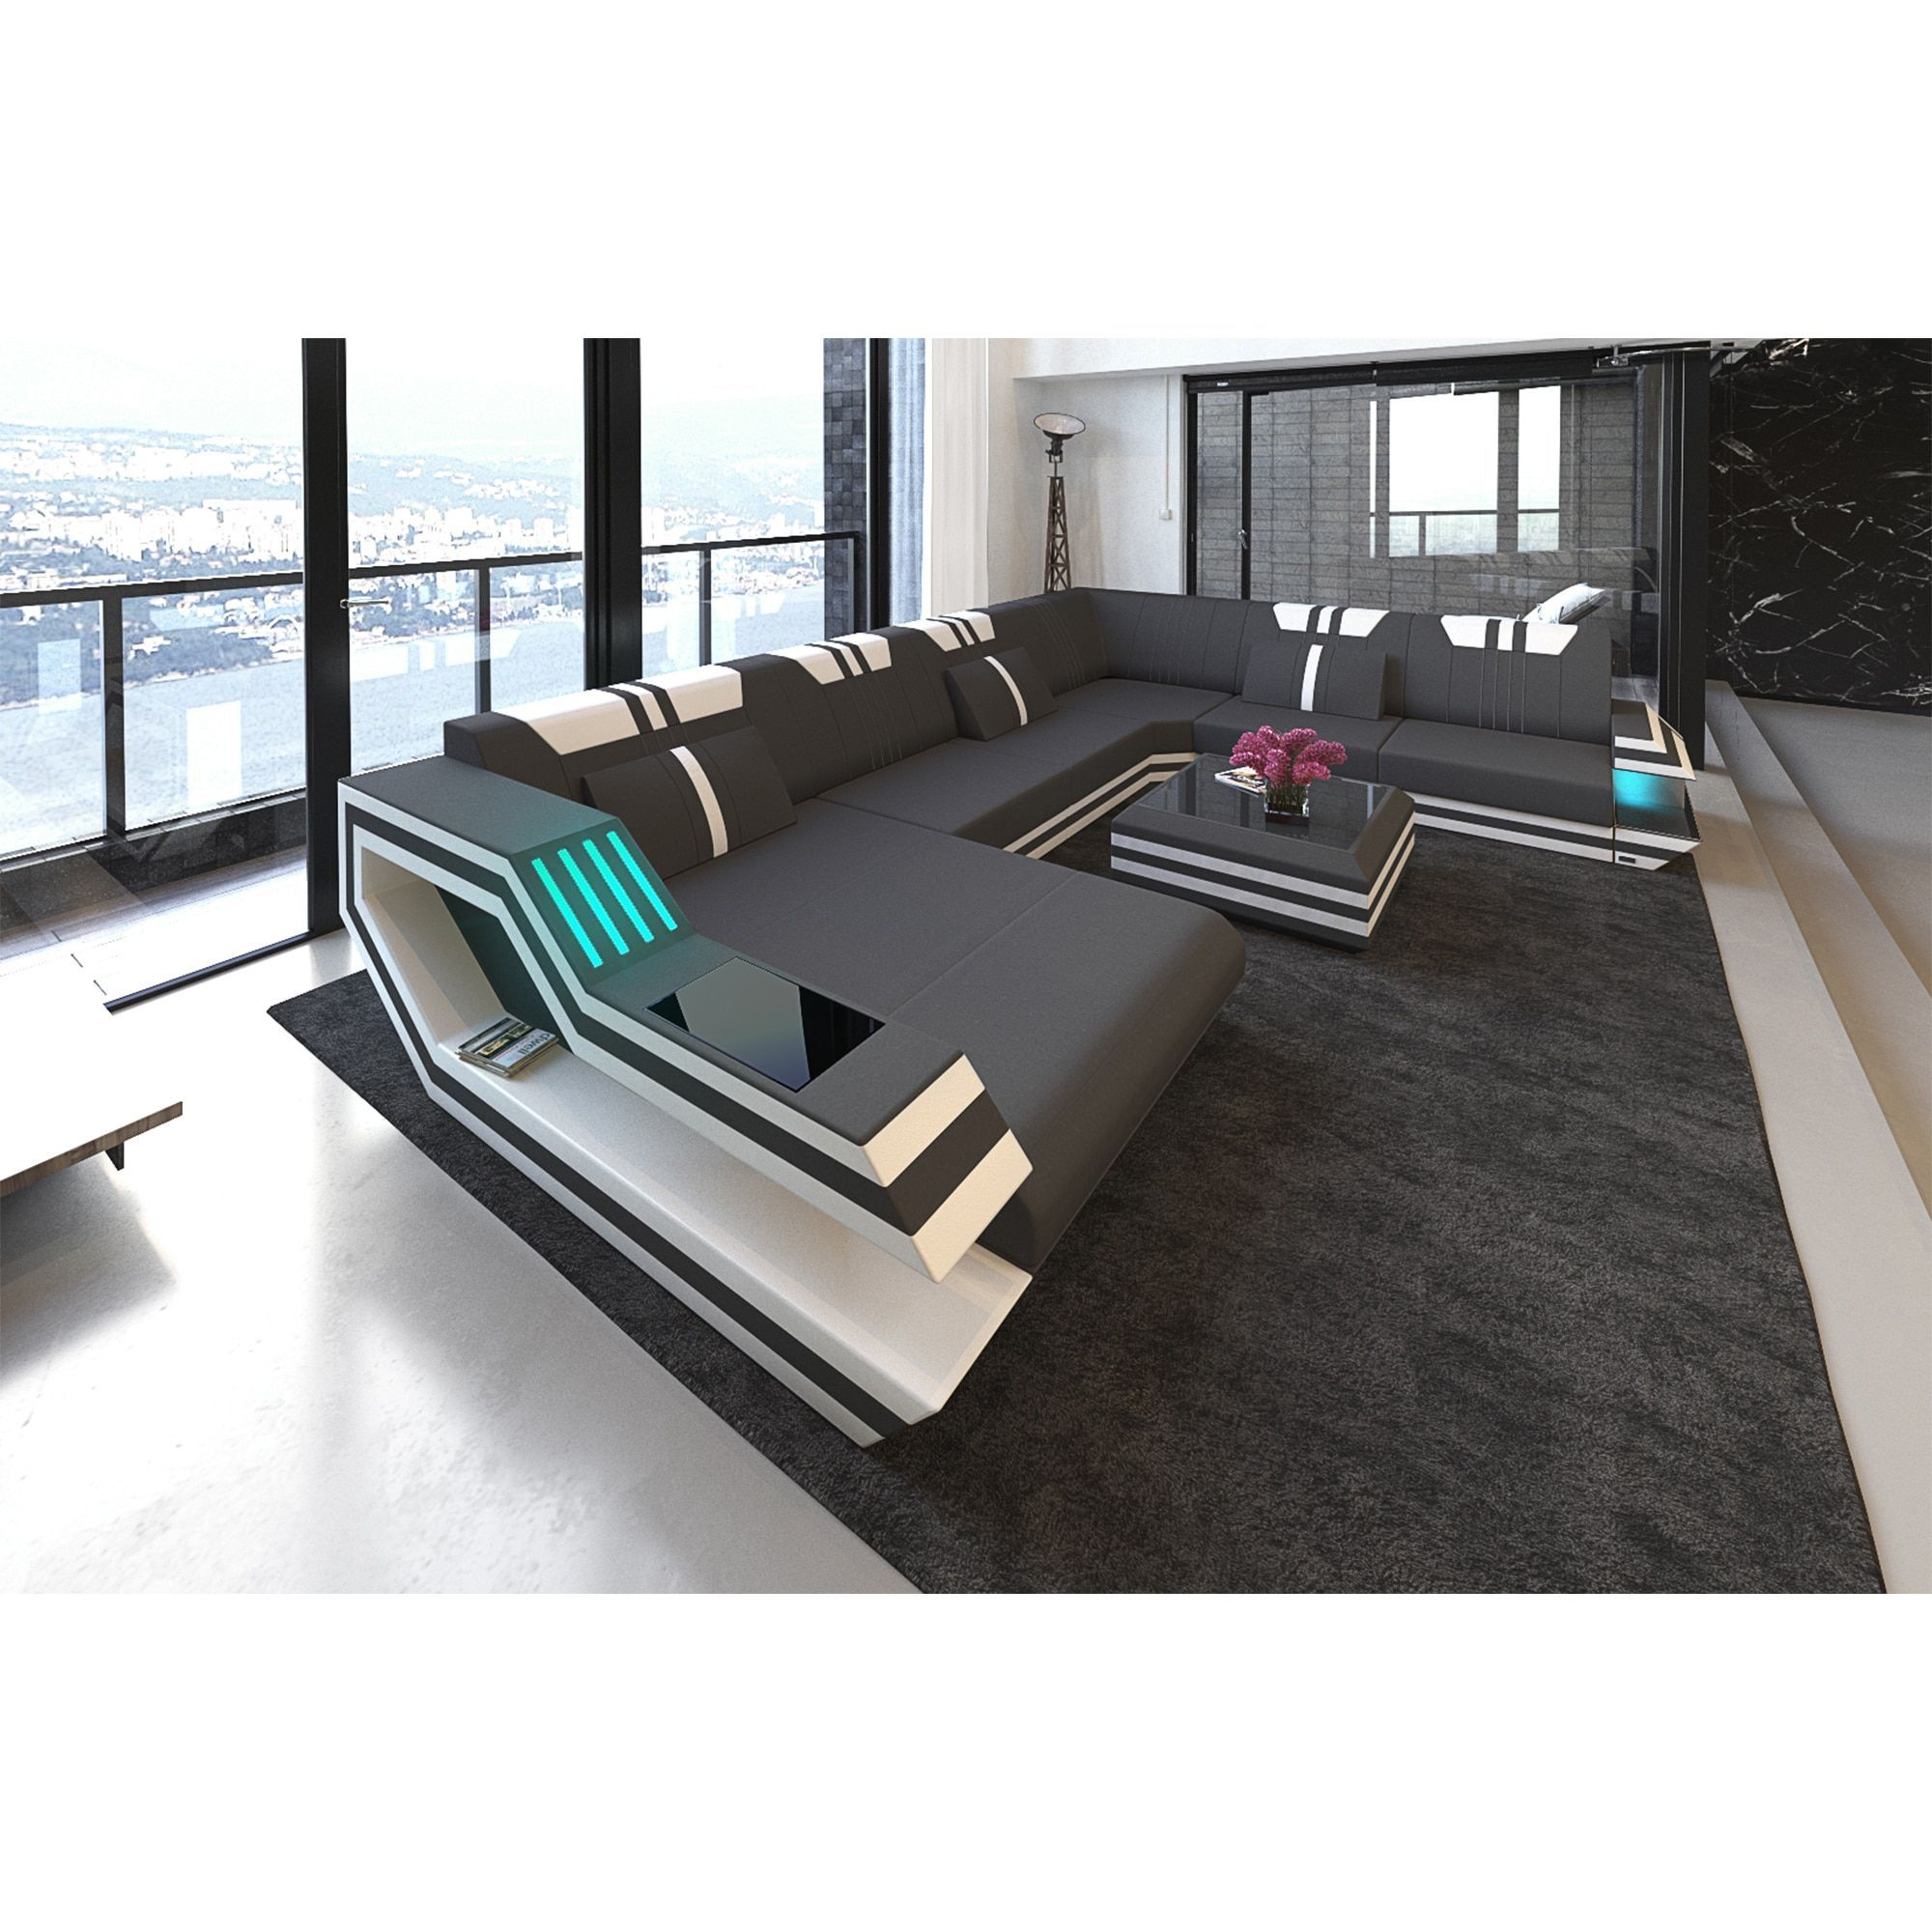 Astonishing Sofadreams Hollywood Xxl Leather Sectional Sofa With Led Machost Co Dining Chair Design Ideas Machostcouk